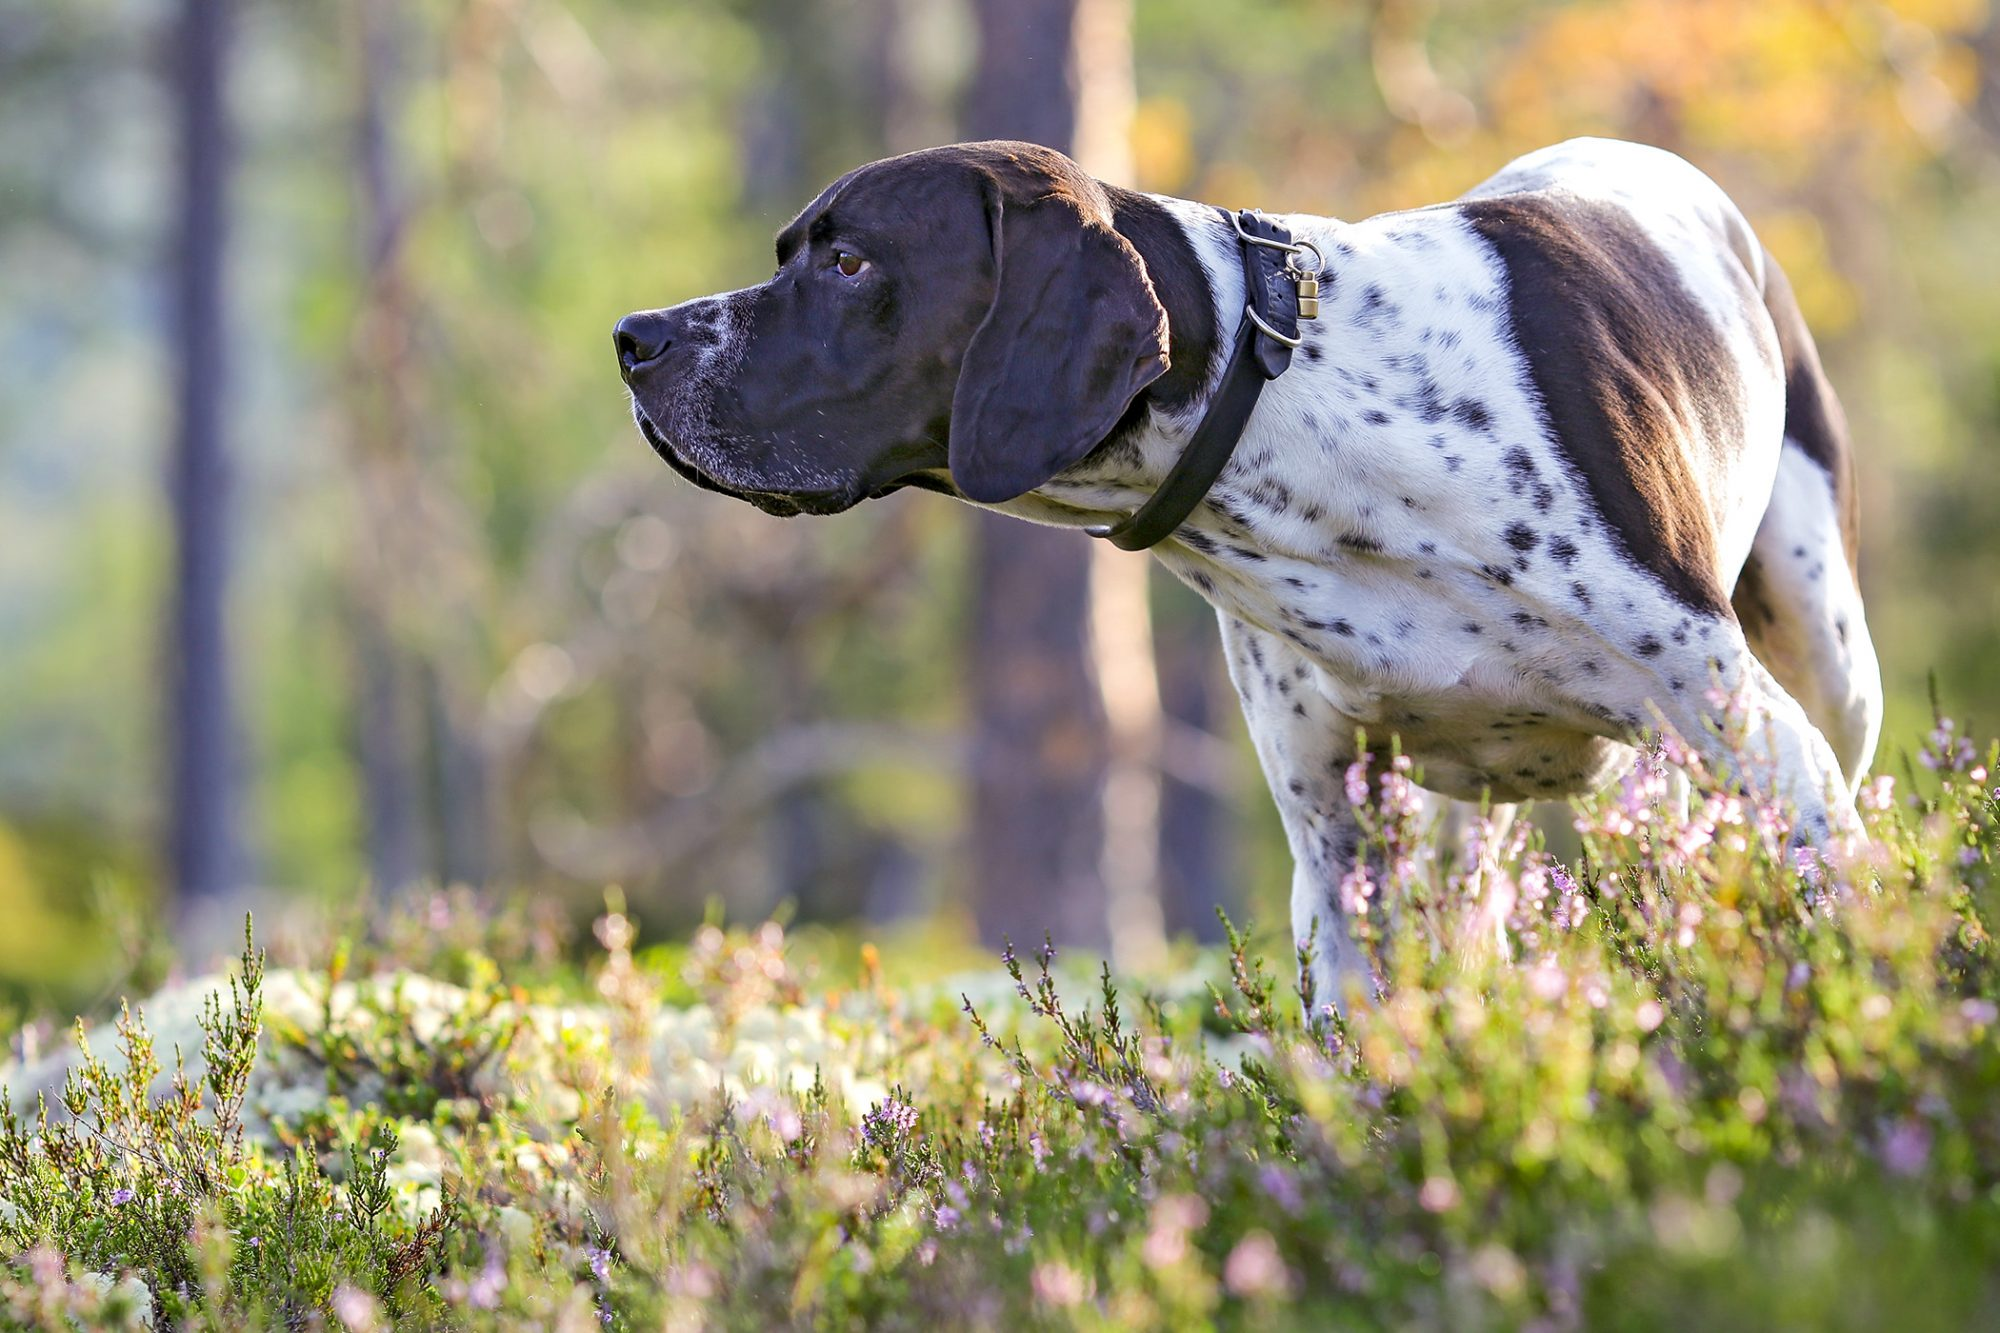 English Pointer in a field of flowers